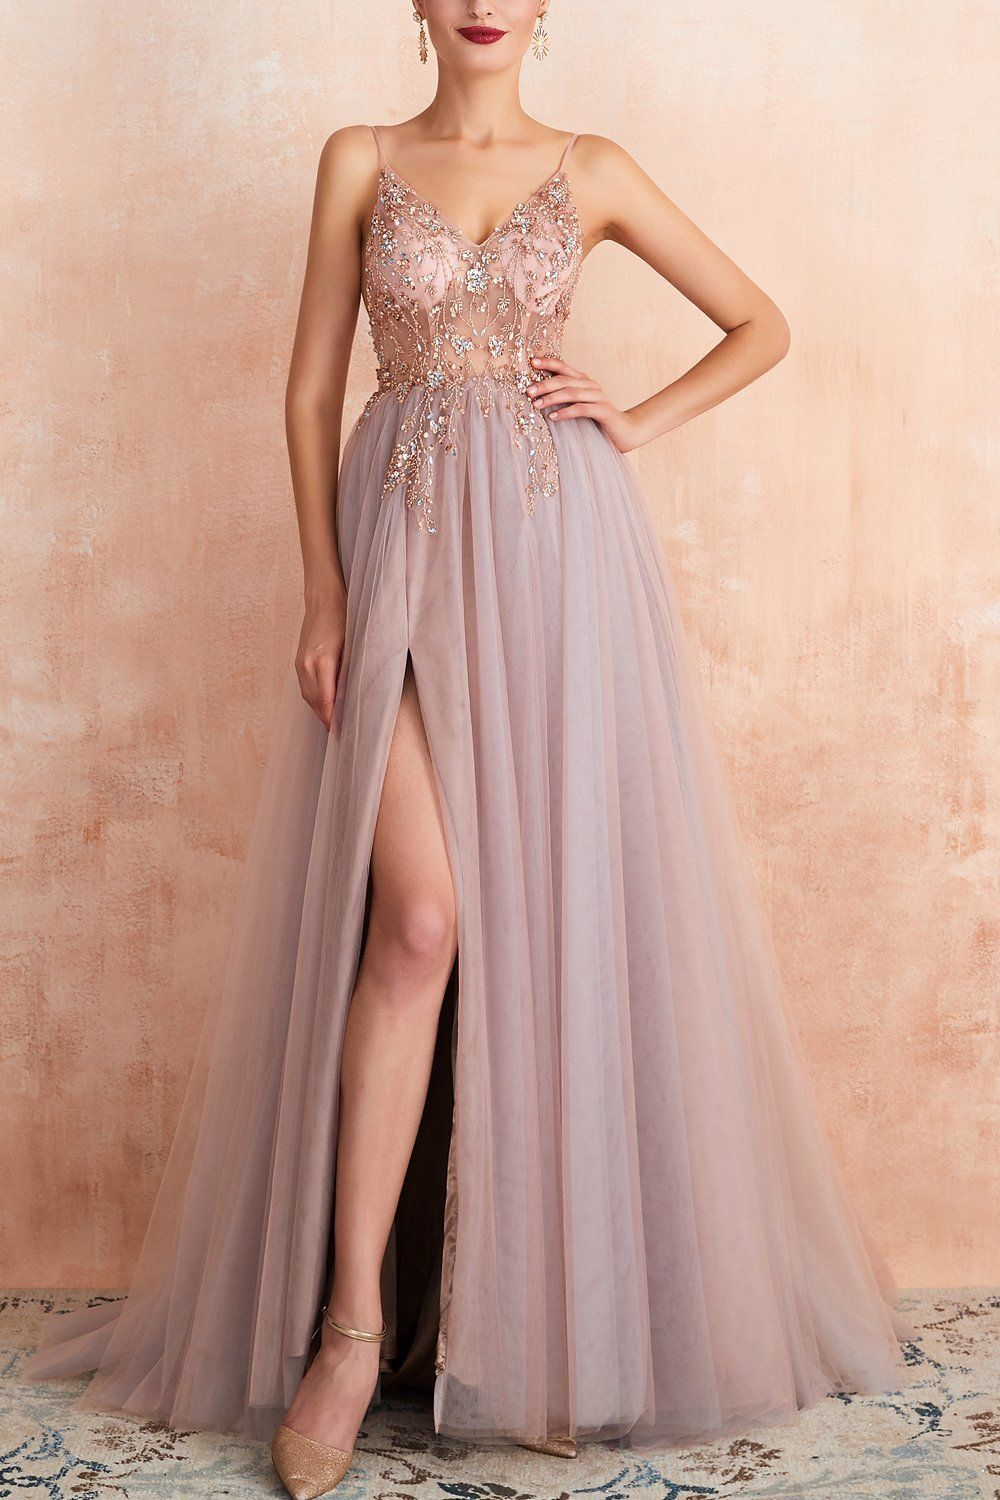 Photo of Spaghetti Straps Slit Tulle Prom Dress – Pink / US4